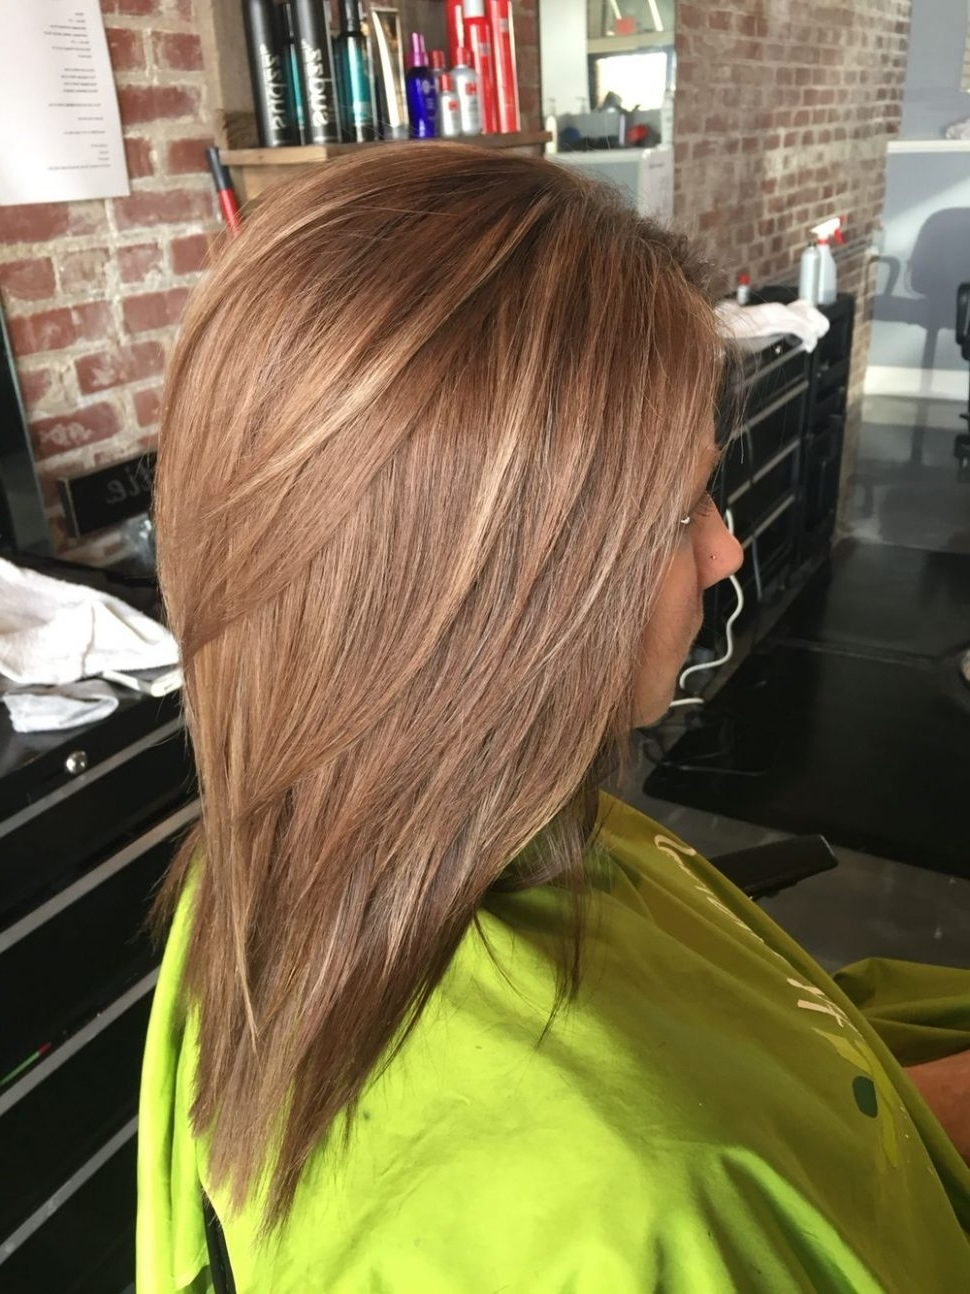 Preferred Curly Caramel Blonde Bob Hairstyles For Hair Color : Brown Hair With Blonde Highlights Wig Light Bob Dark (View 16 of 20)